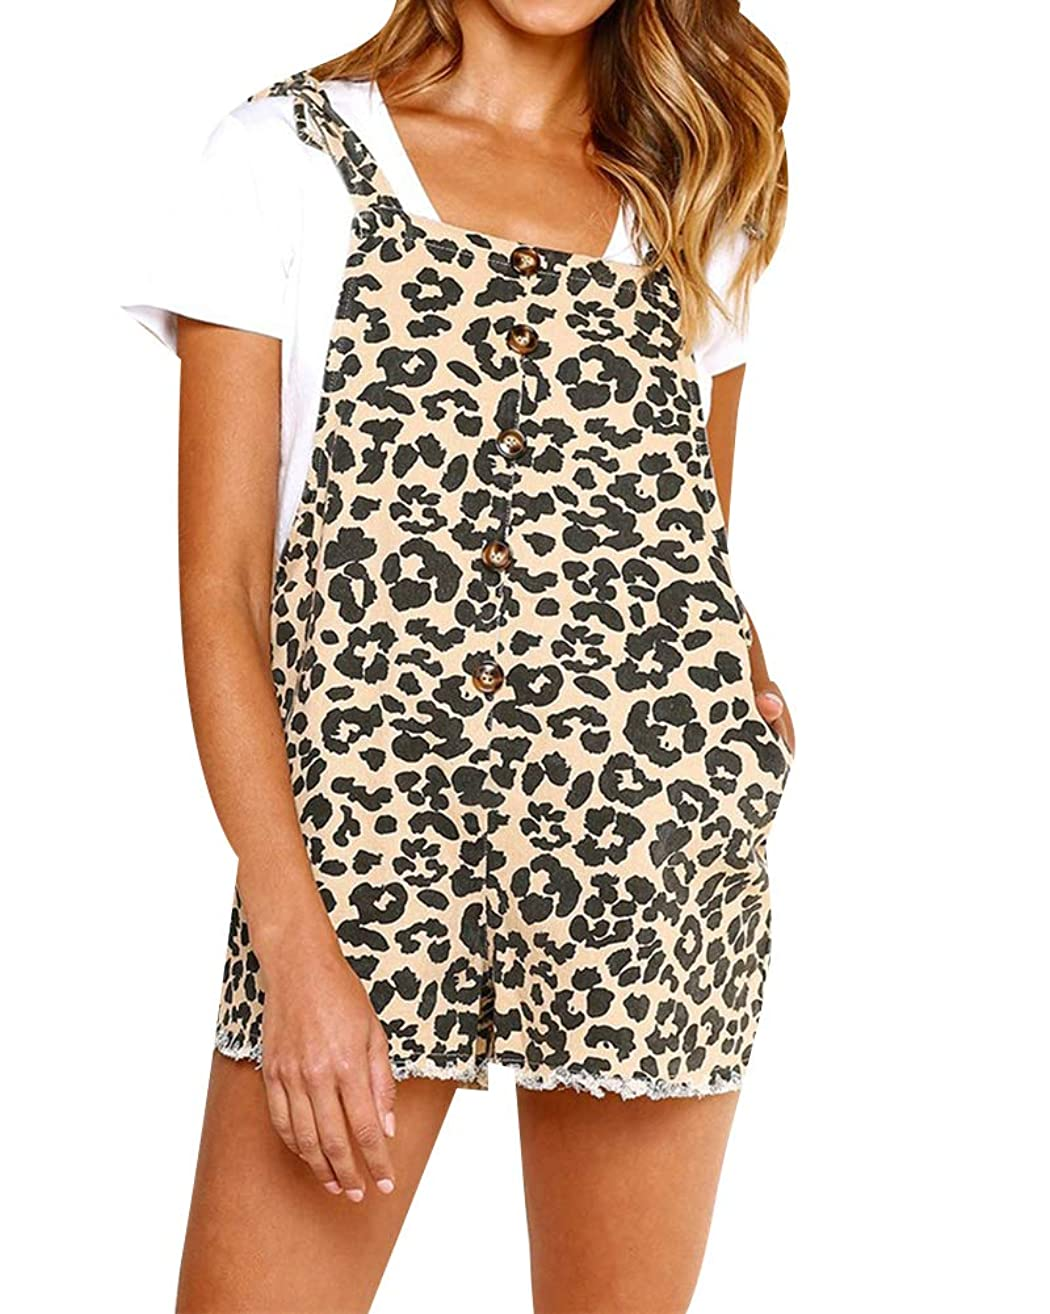 Adogirl Women Leopard Bib Overalls - Casual Sleeveless Buttom Front Strap Backless Romper with Pockets